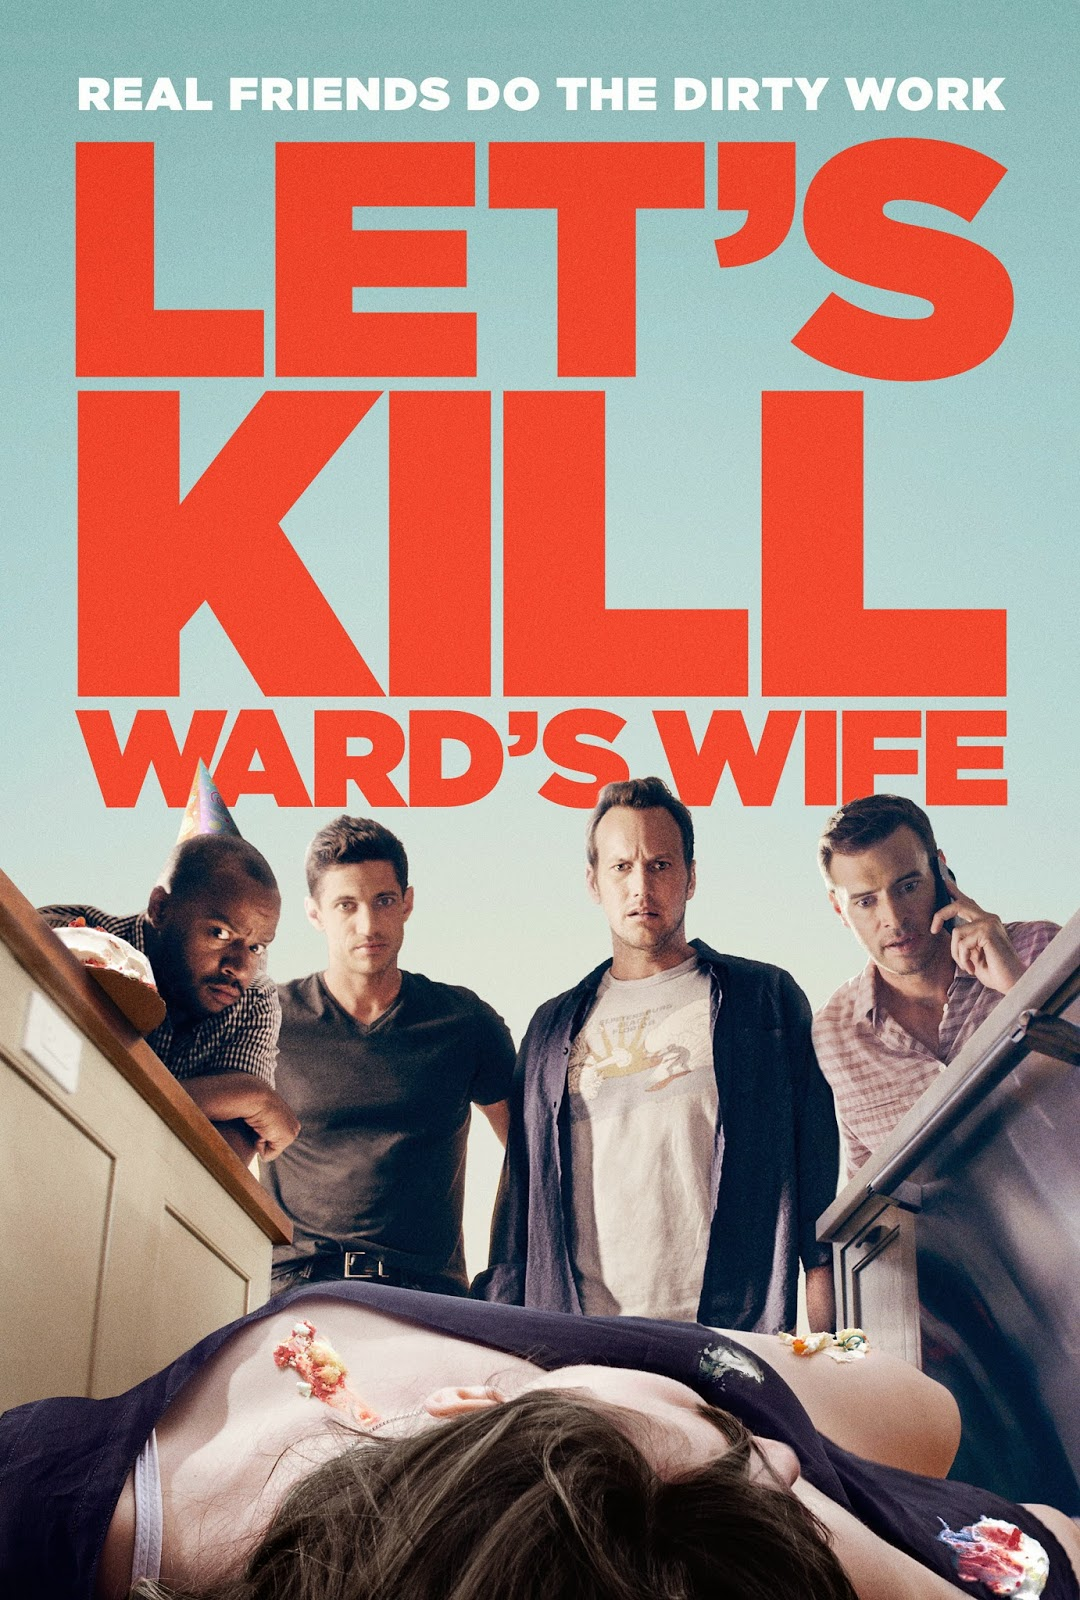 Let's Kill Ward's Wife (2014) Poster